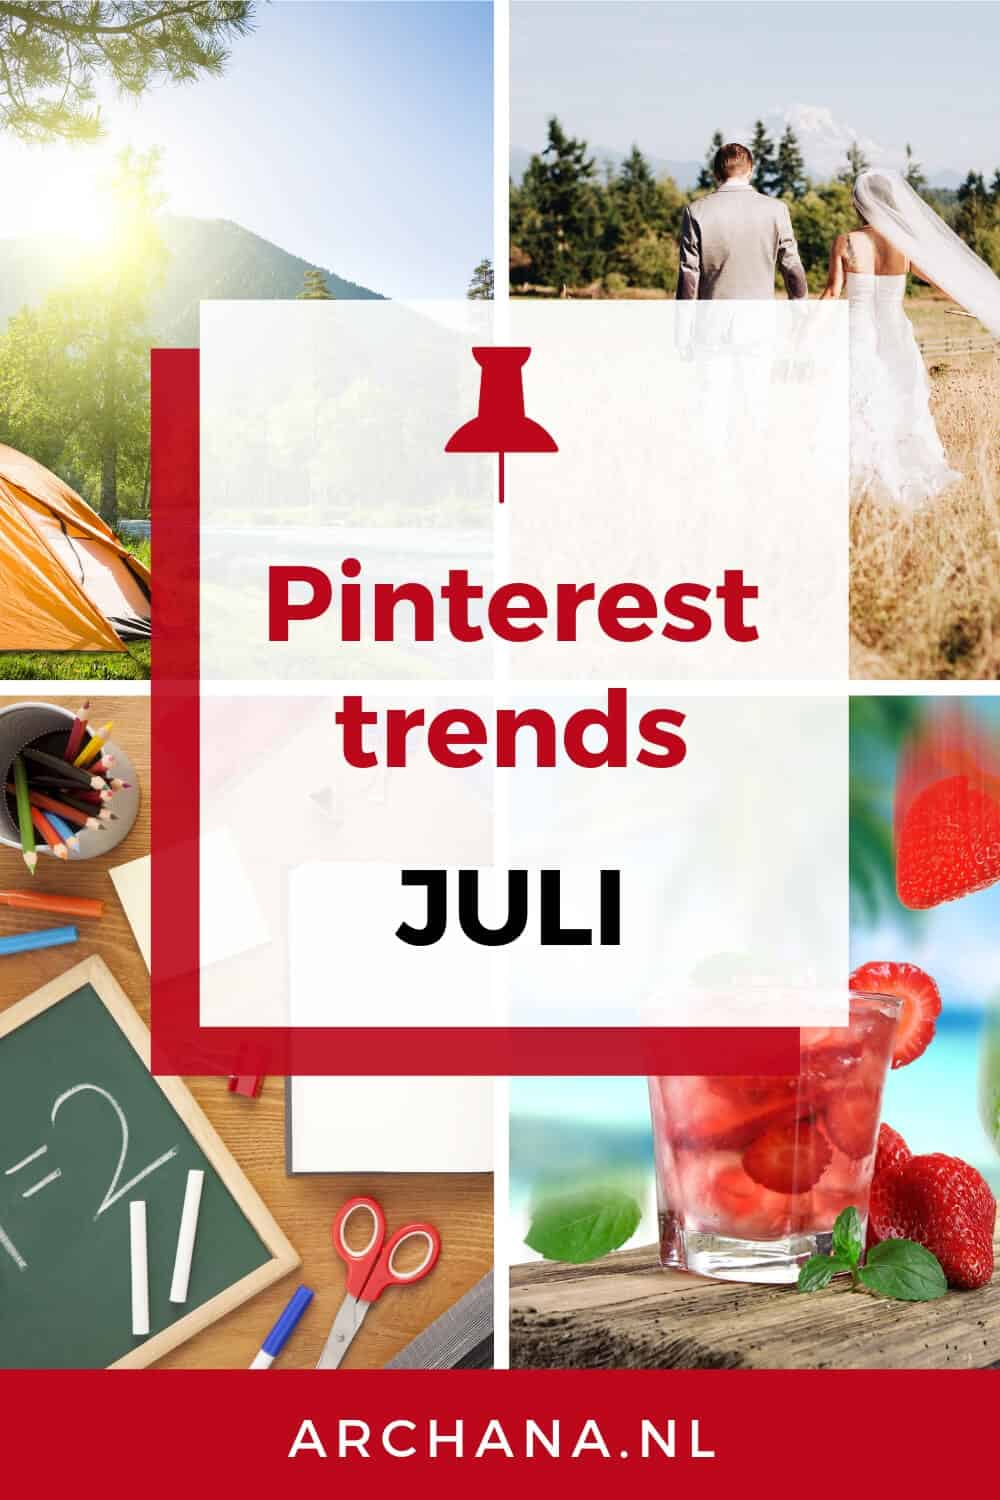 Pinterest trends voor juli: Wat ga je pinnen in juli - ARCHANA.NL #pinterestmarketing #pinteresttrends